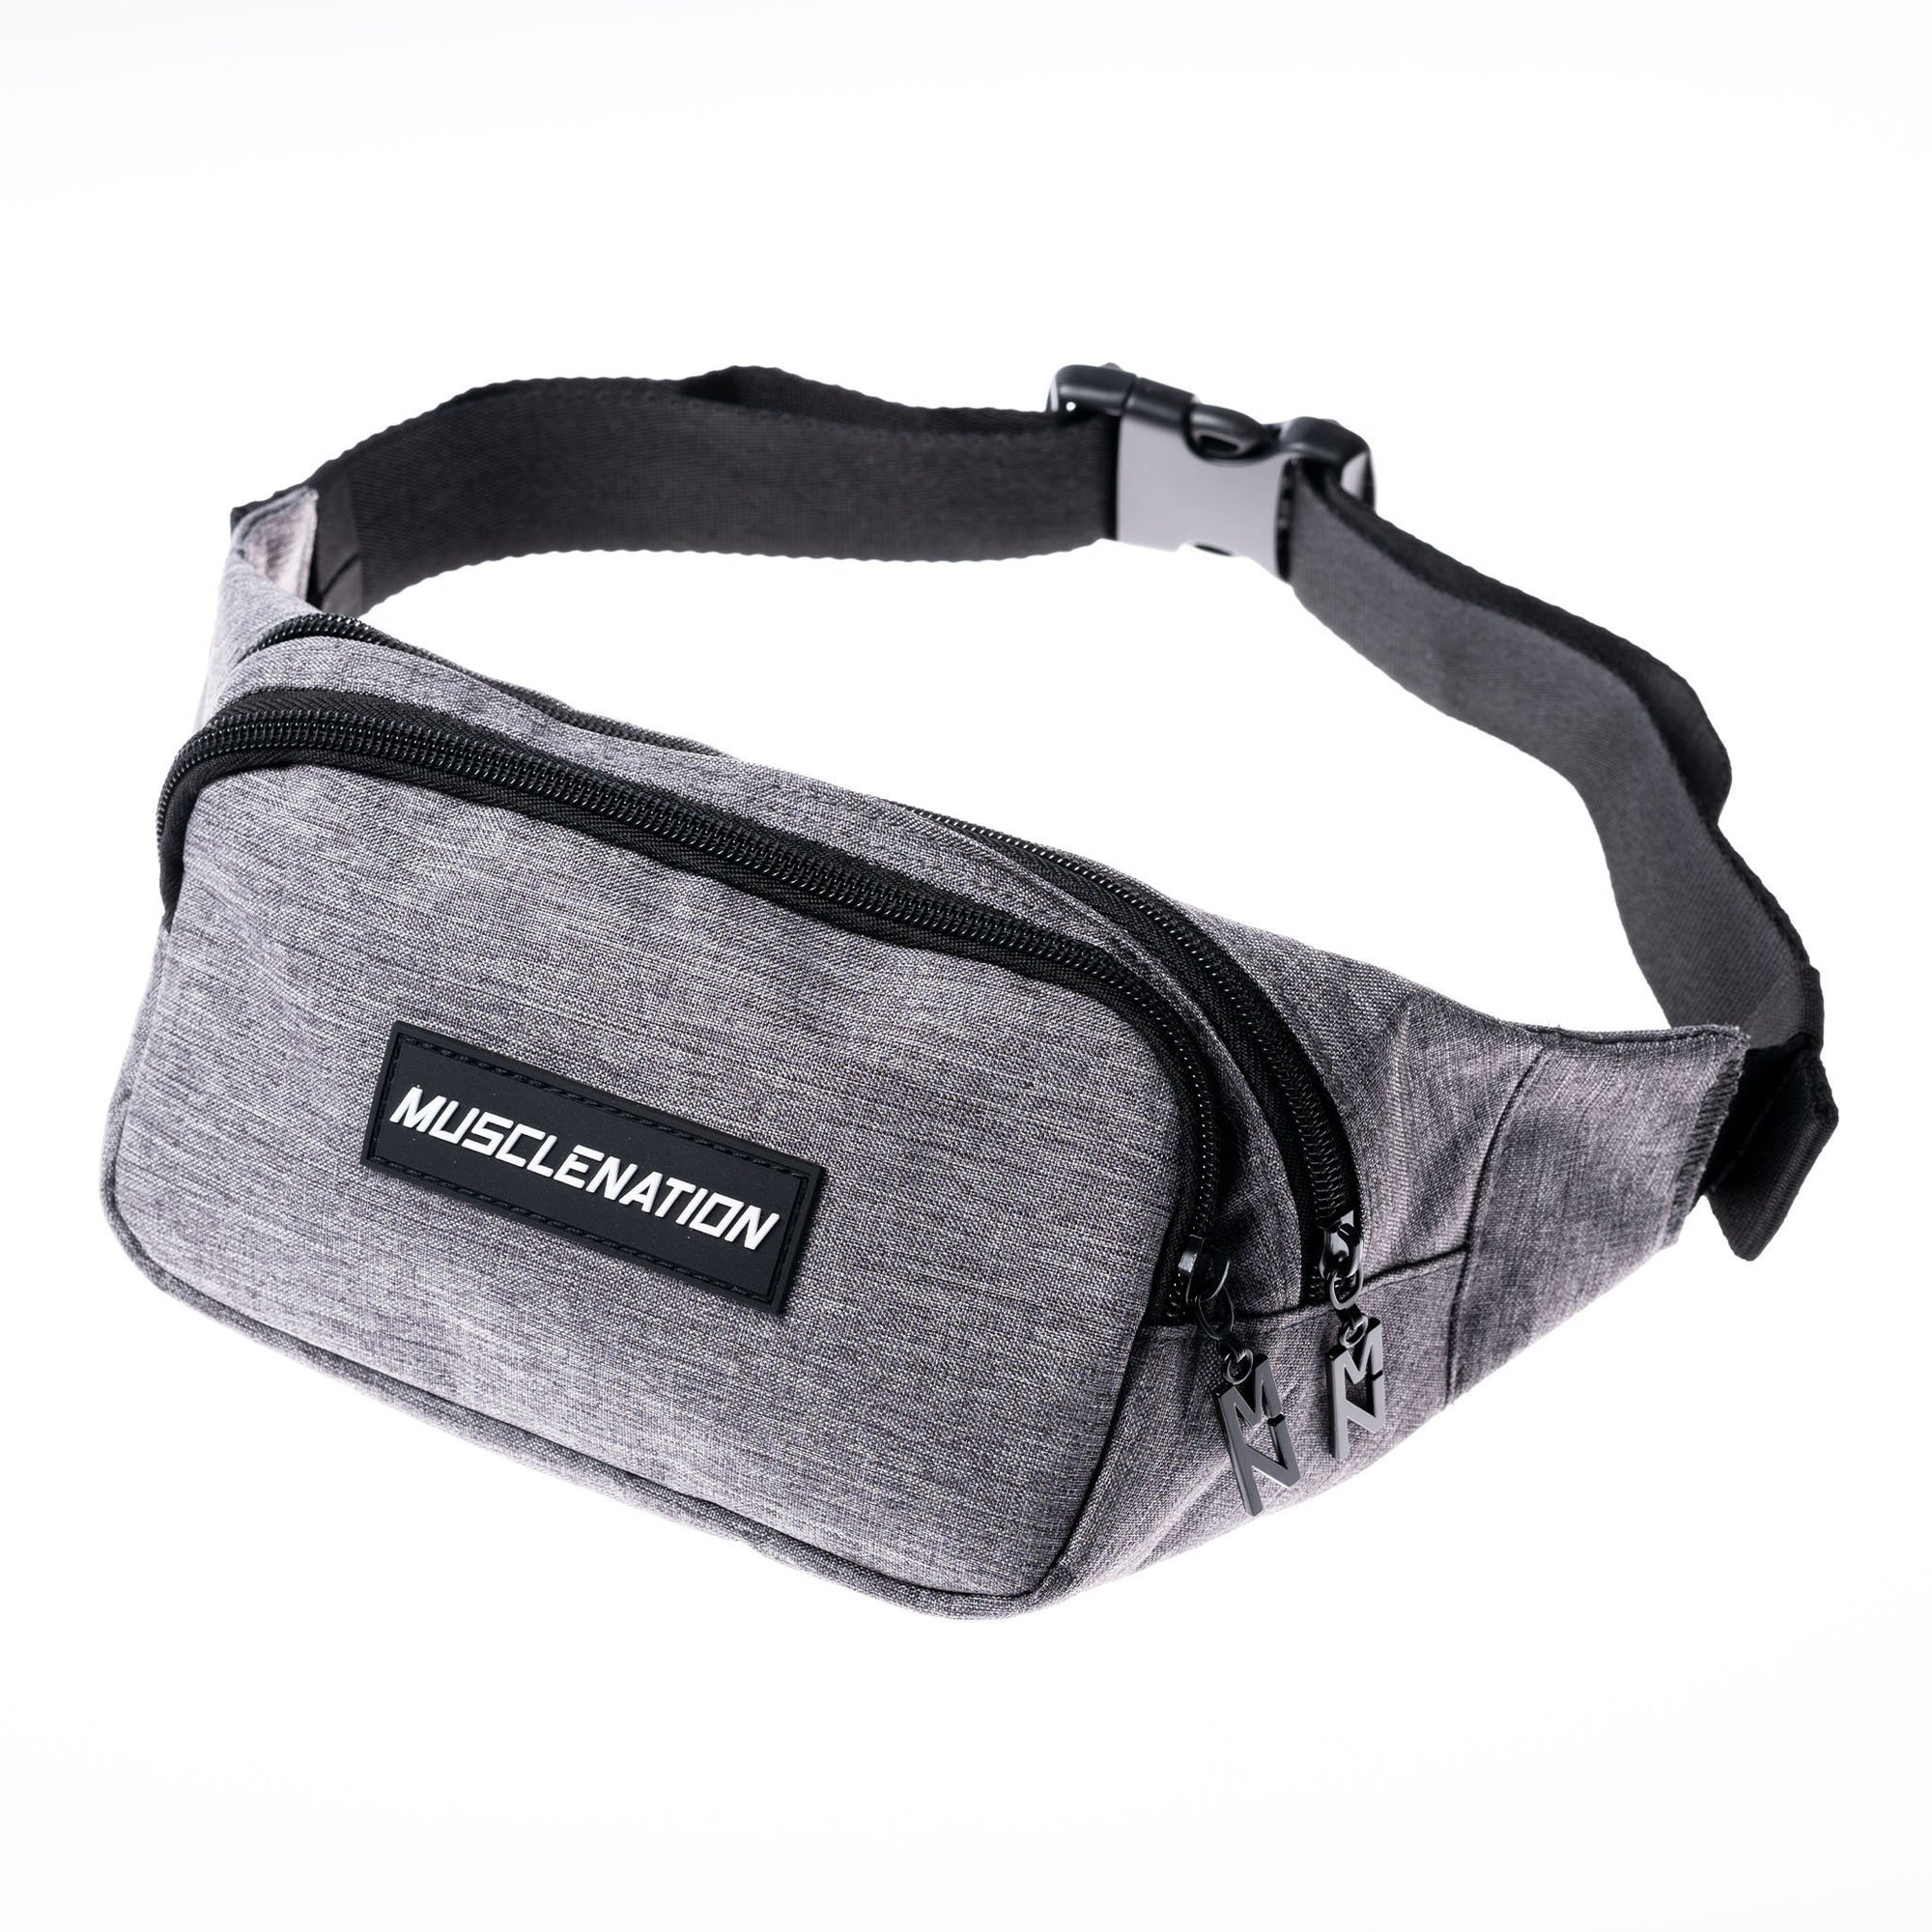 Muscle Nation Bum Bag - Grey